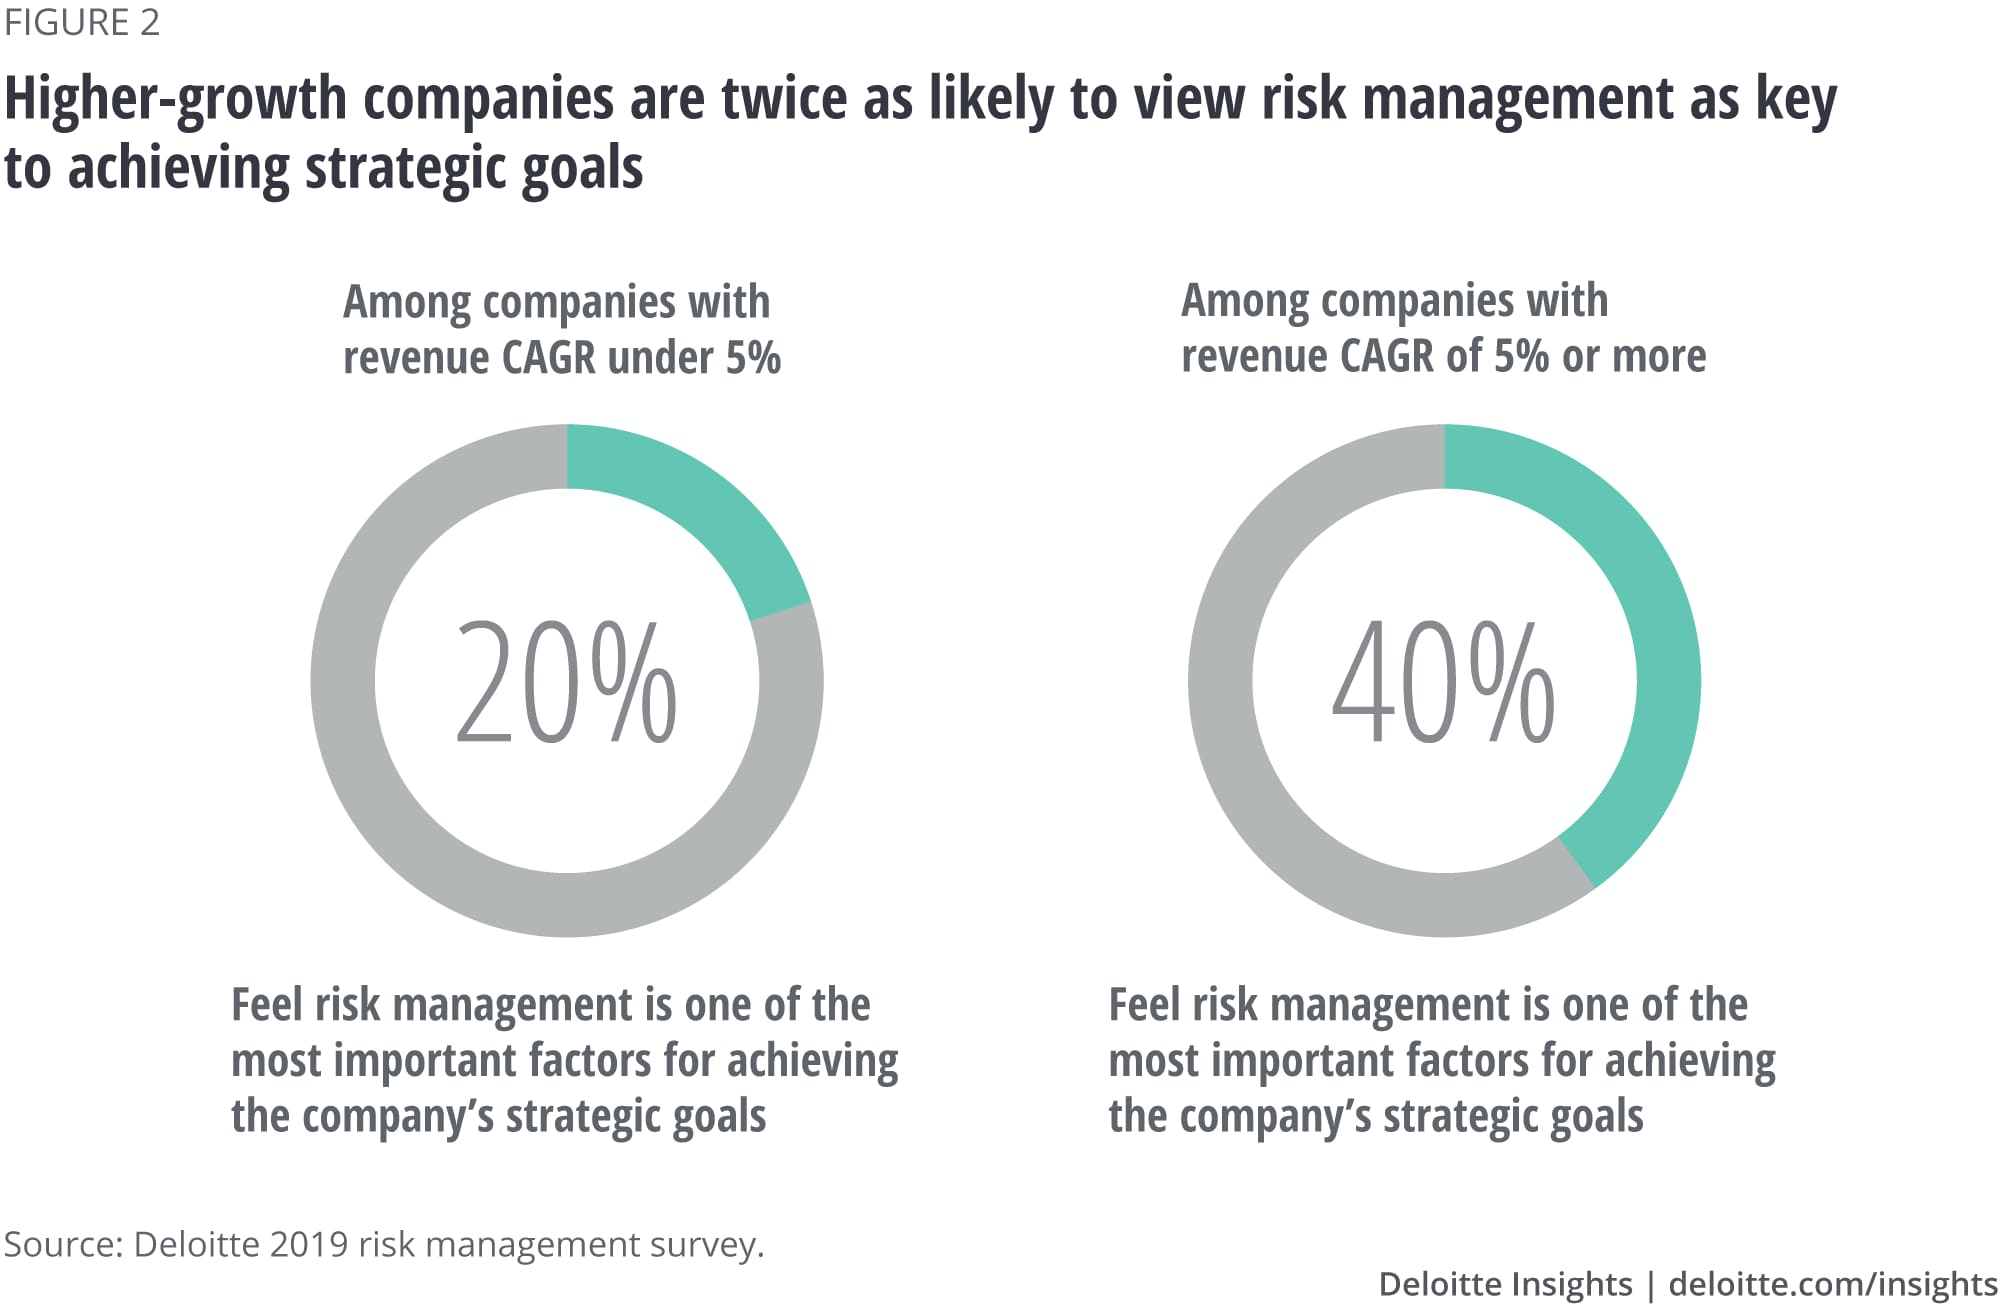 Higher-growth companies are twice as likely to view risk management as key to achieving strategic goals